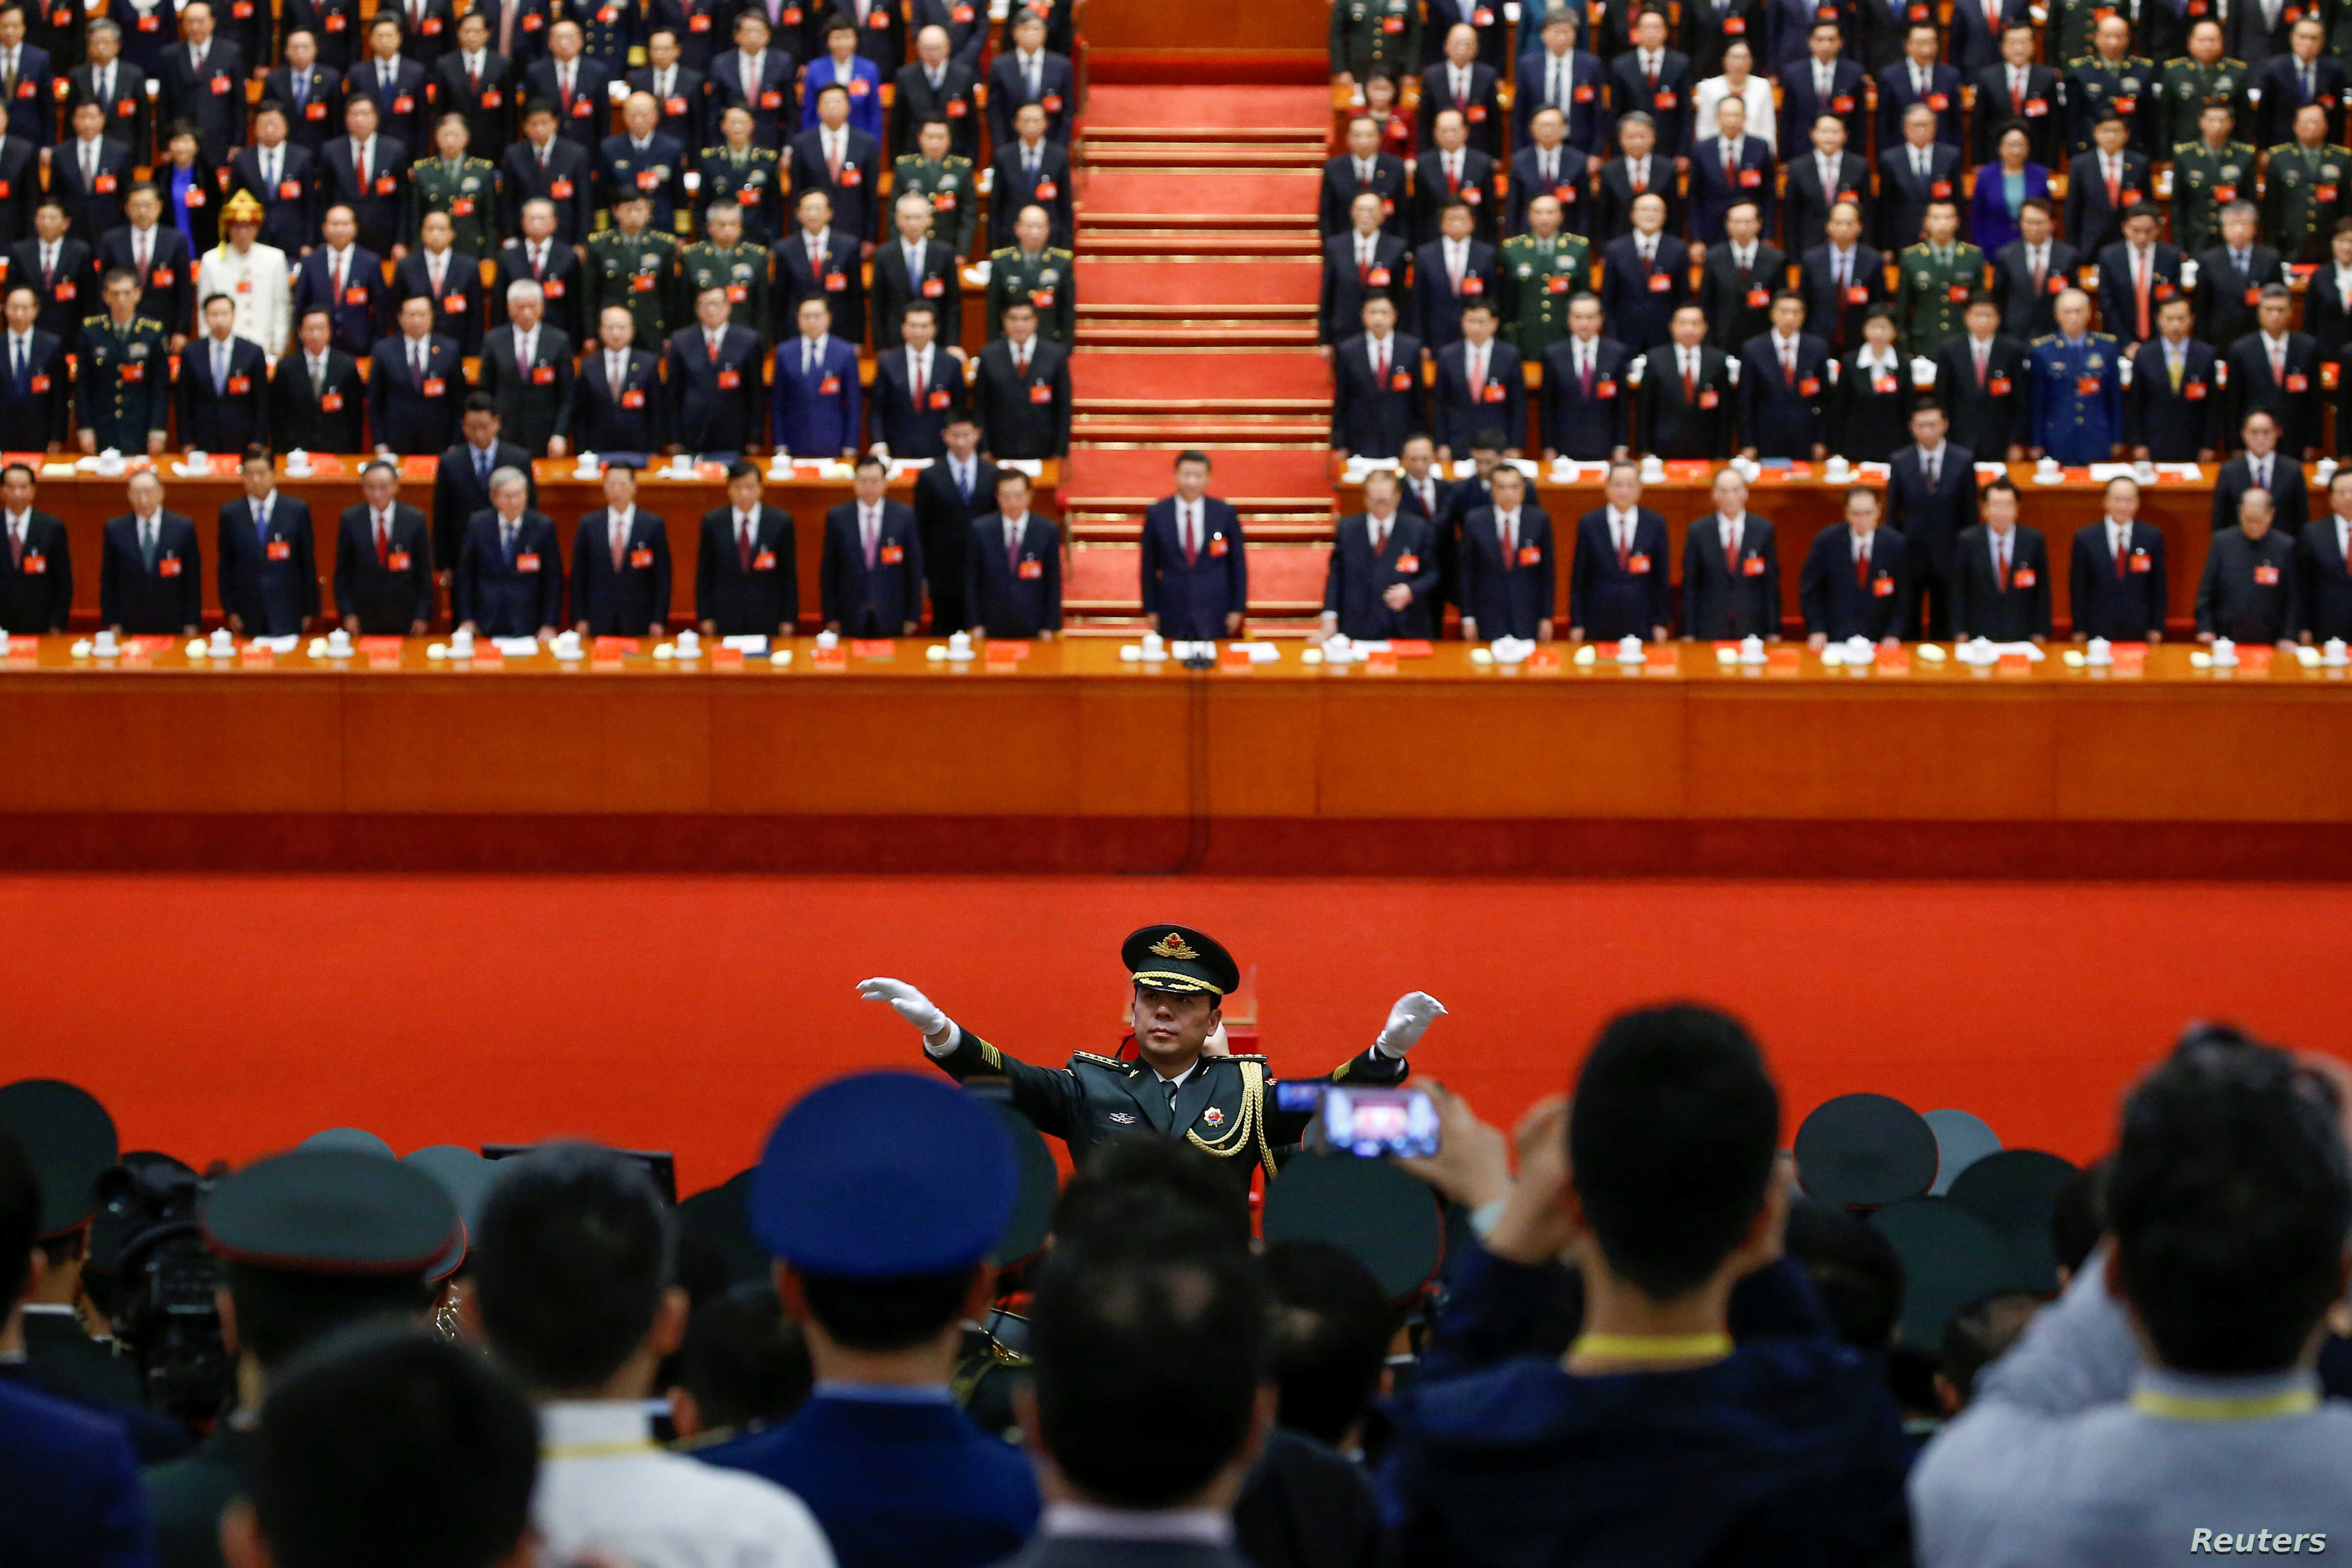 A conductor leads an orchestra as delegates stand for the national anthem during the closing session of the 19th National Congress of the Communist Party of China at the Great Hall of the People in Beijing, Oct. 24, 2017.